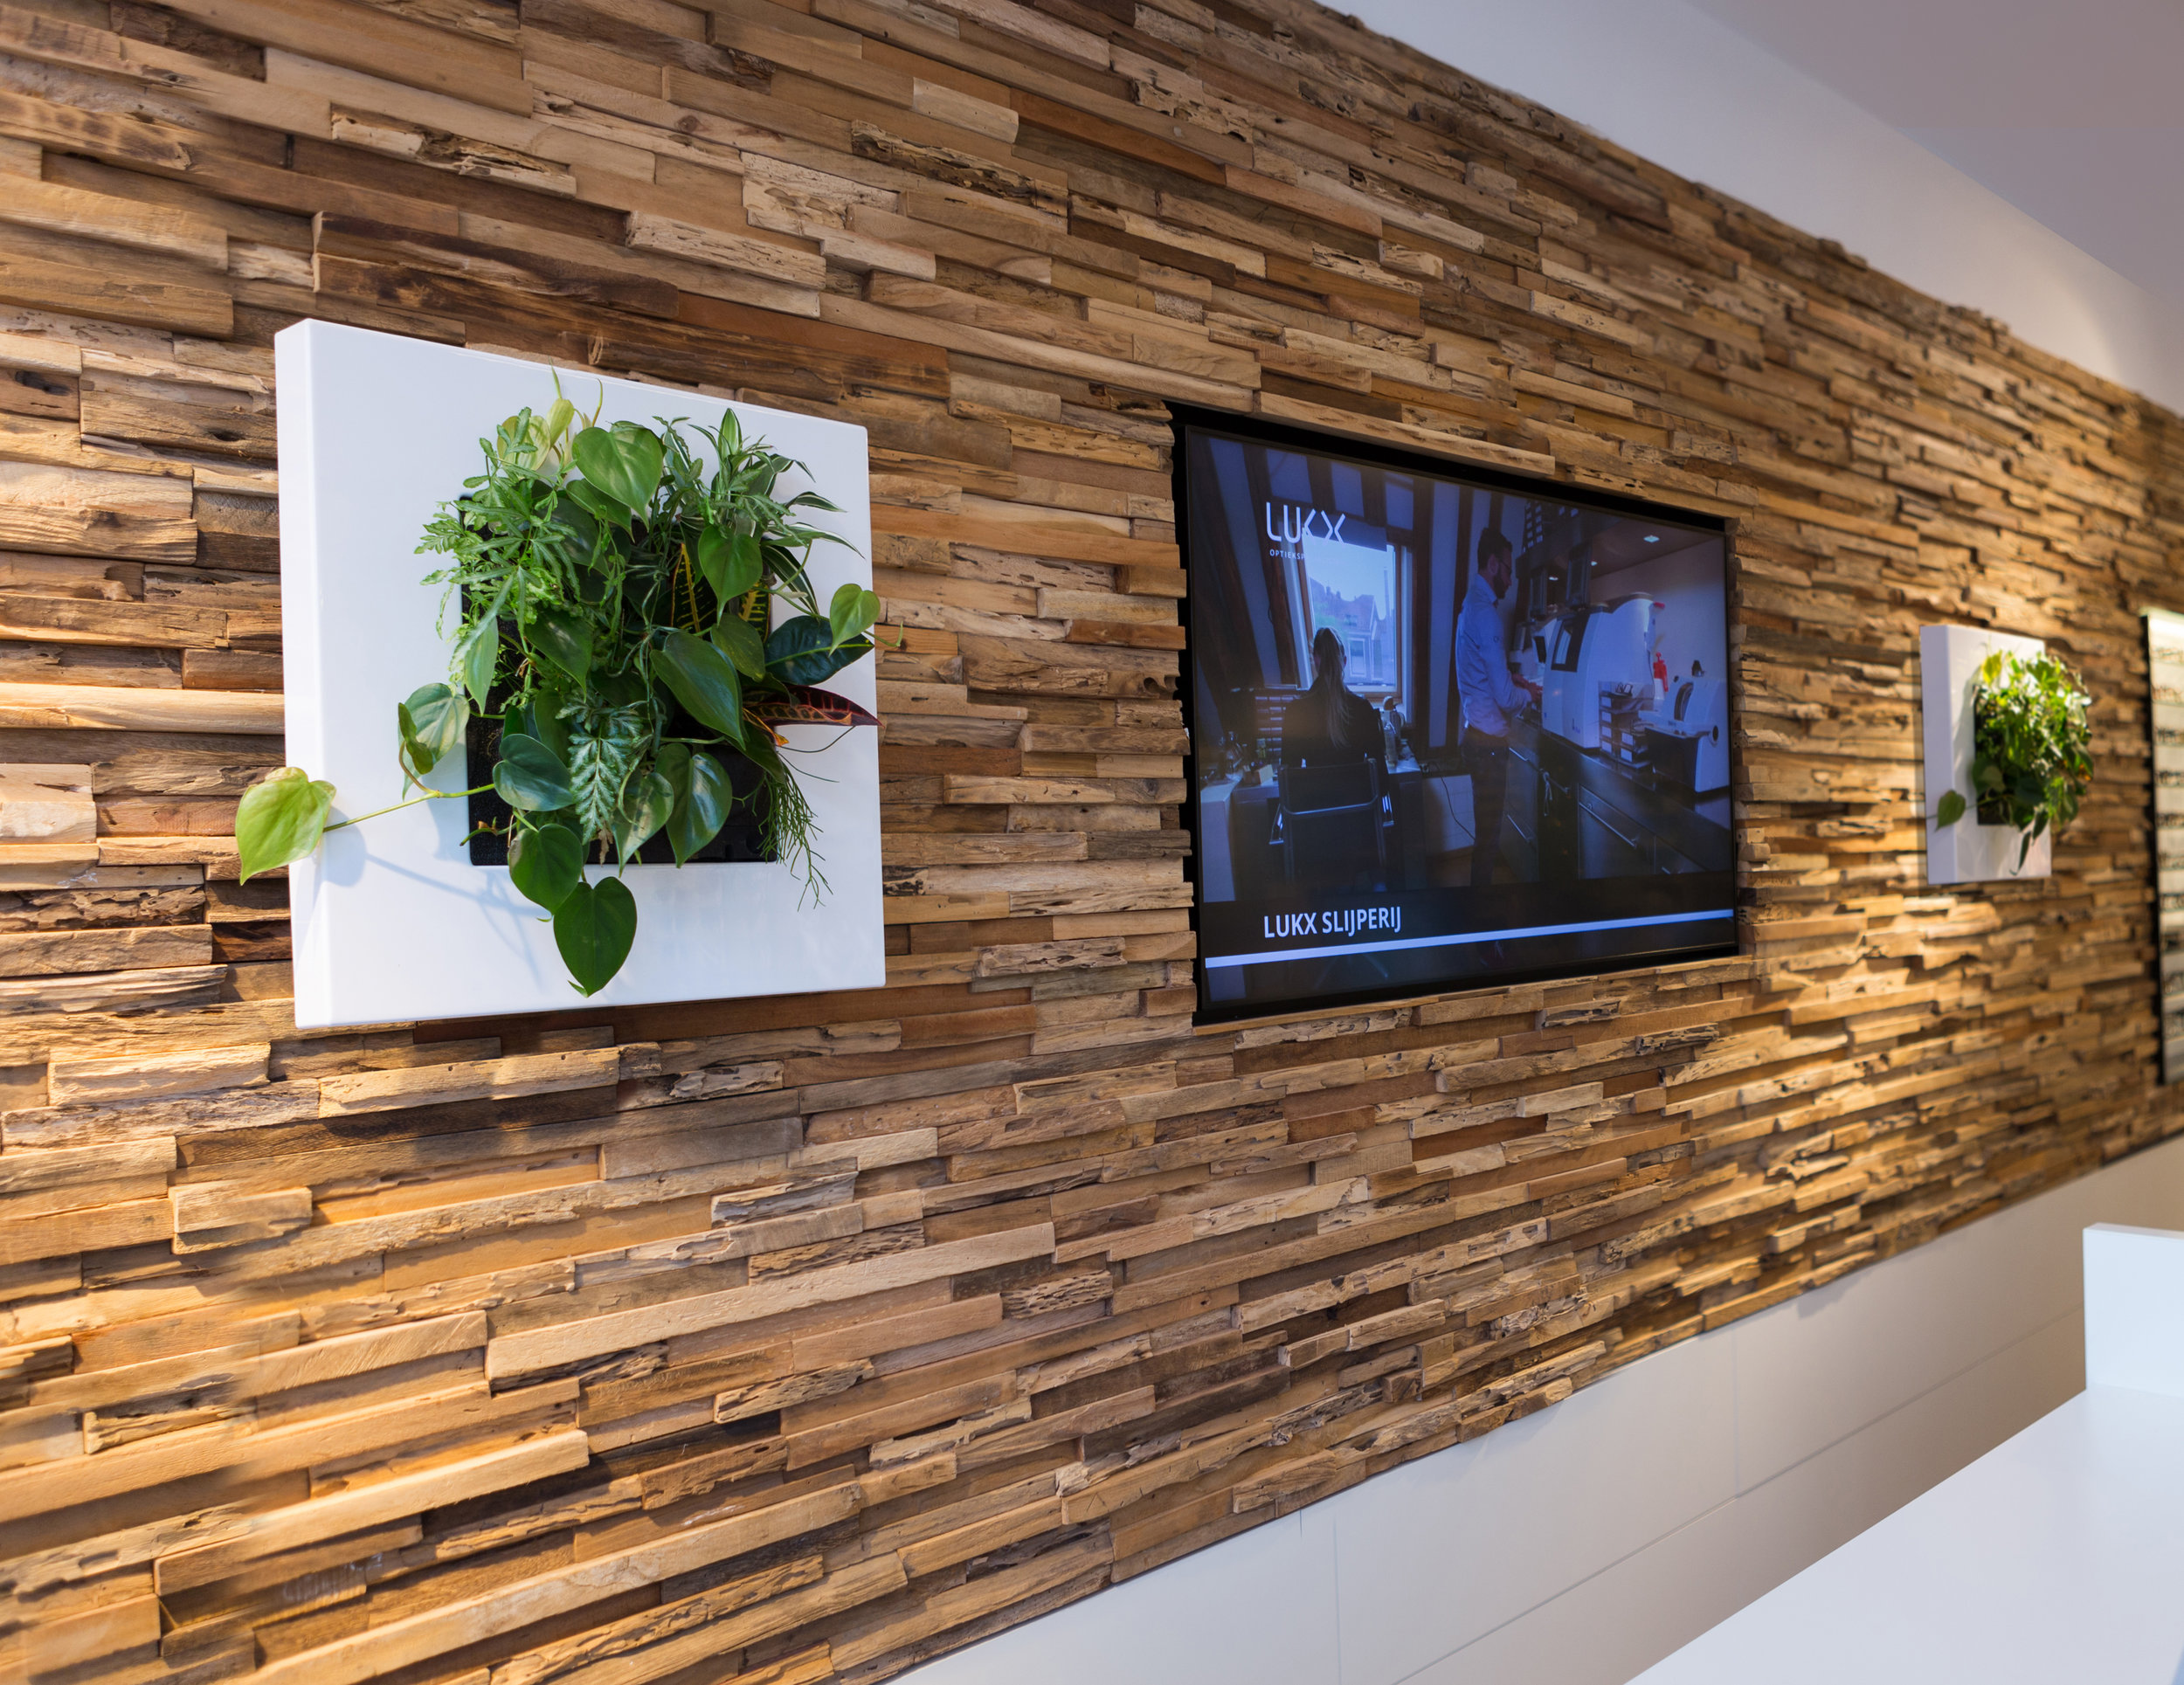 LivePictureGO White Office TV Stone Wall